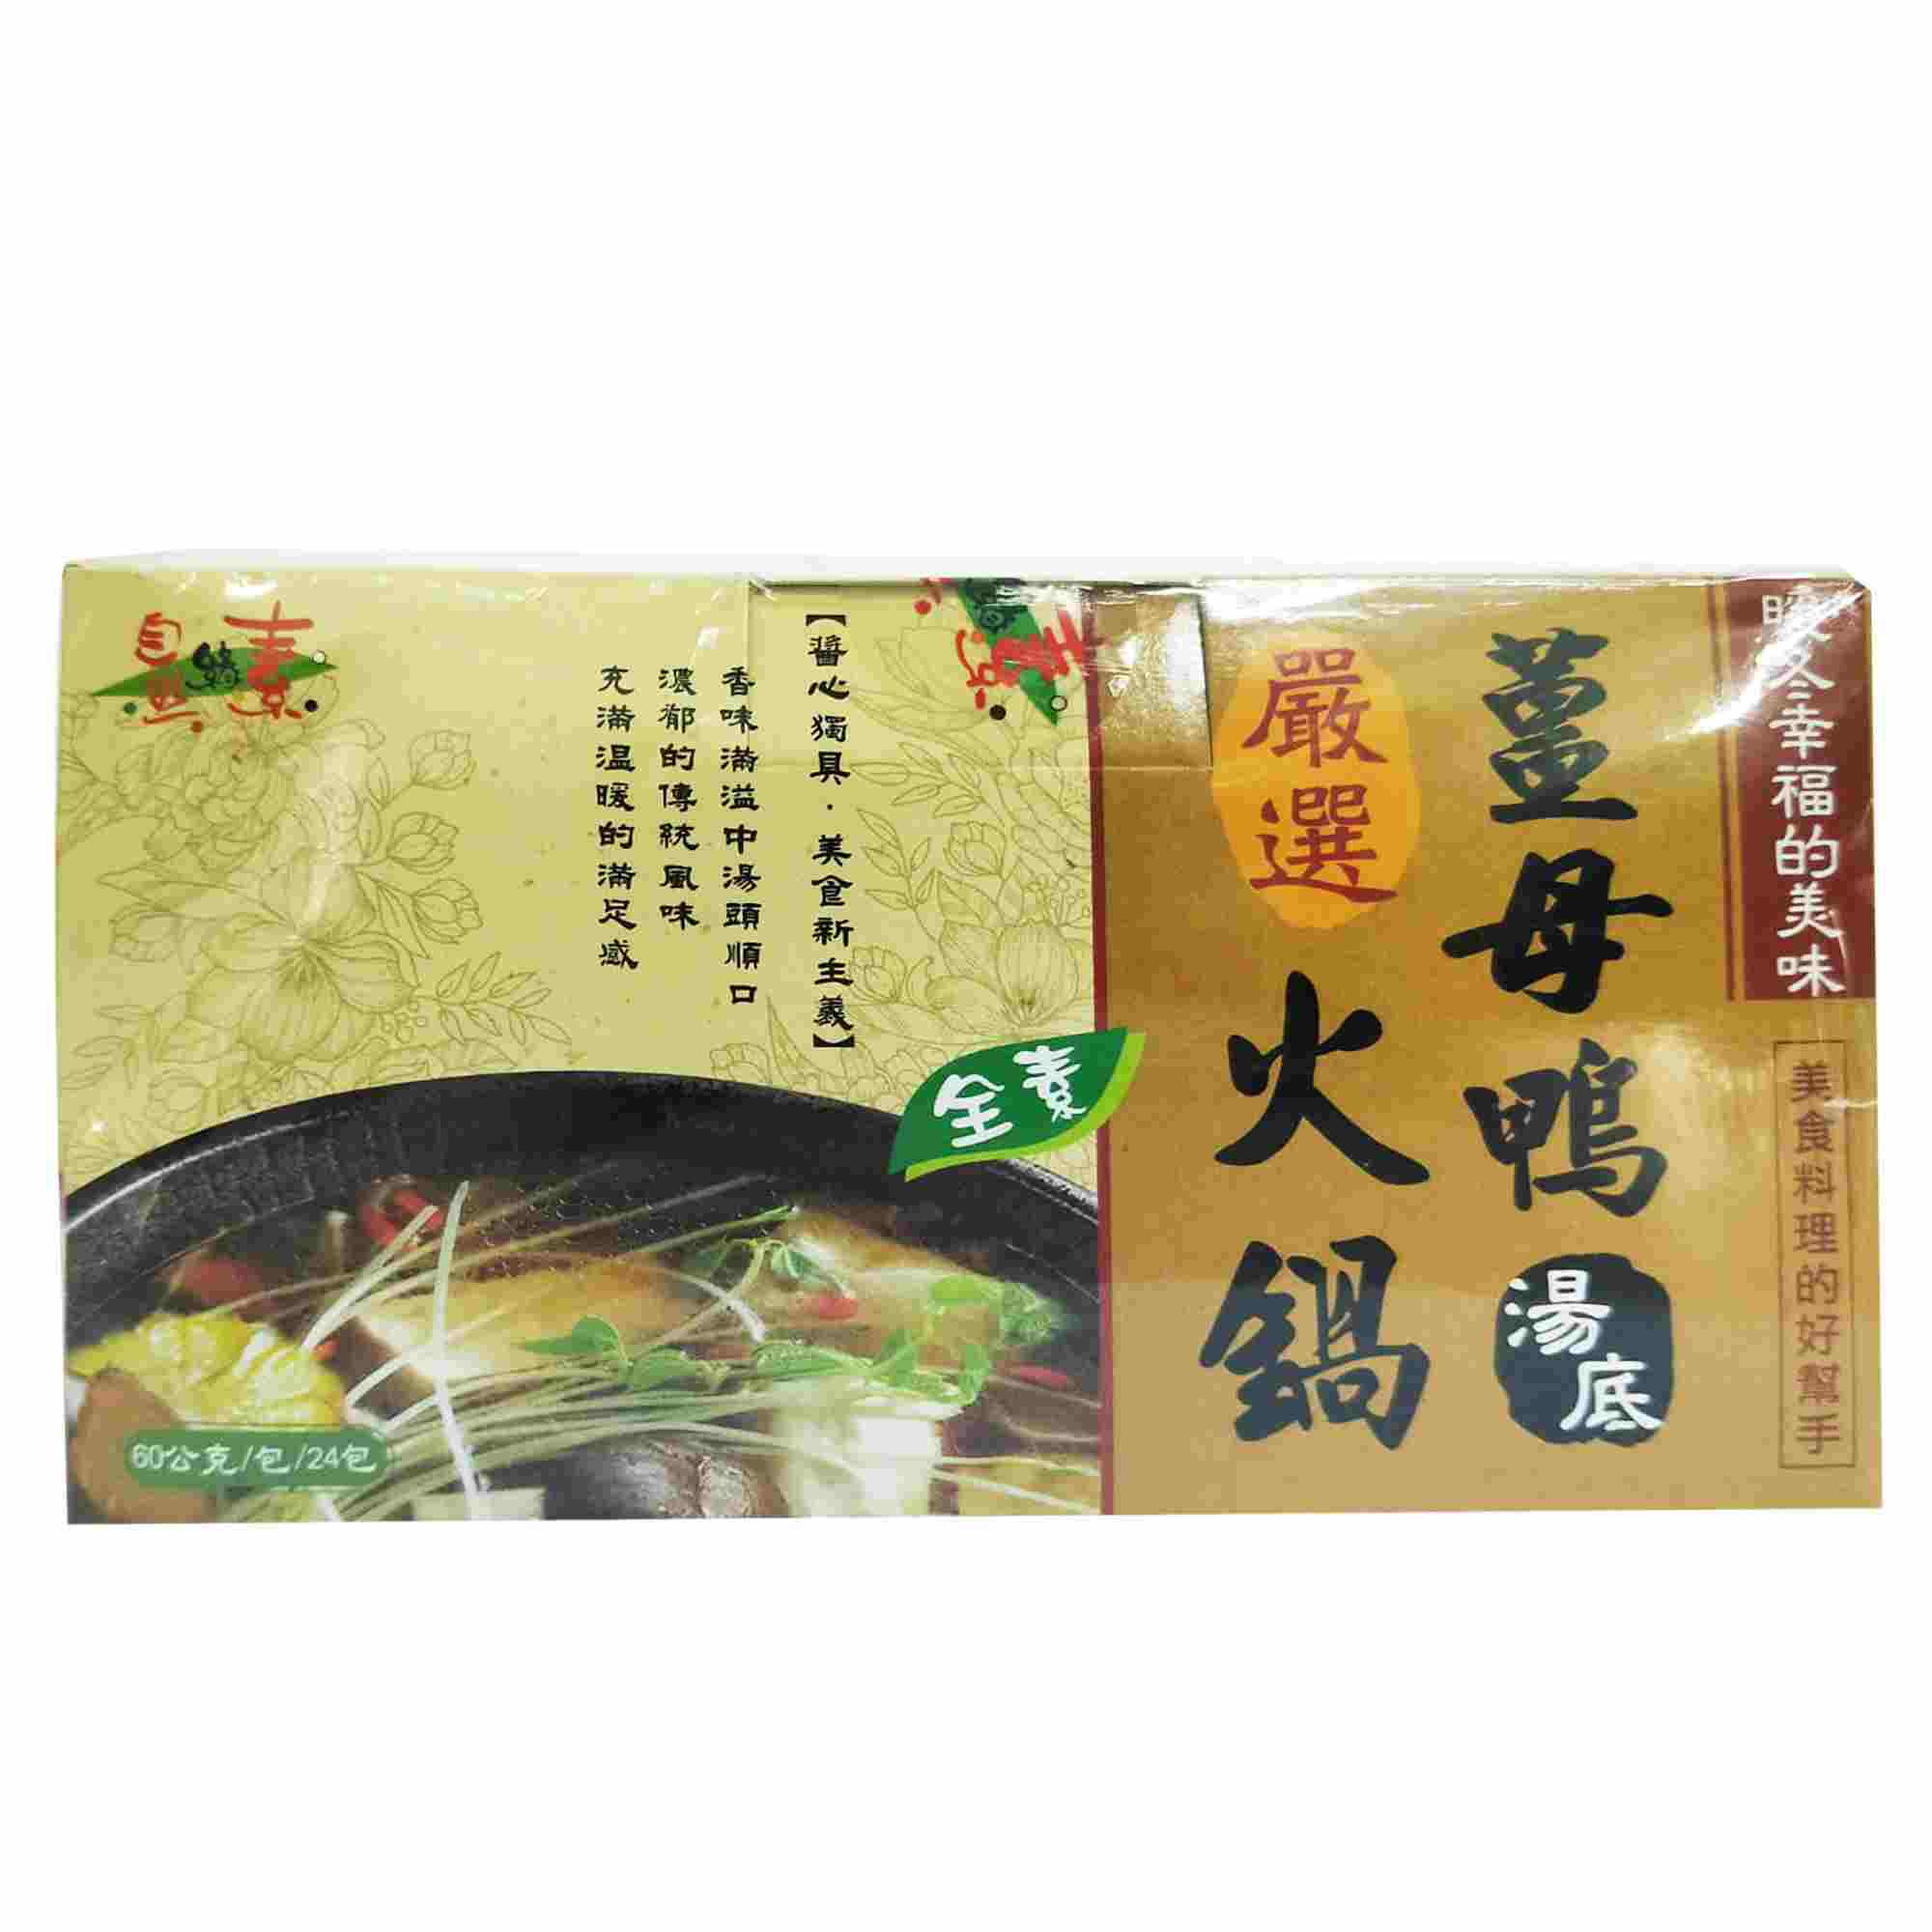 Image Ginger Duck Steamboat Soup base 佳撰-姜母鸭汤包 60grams